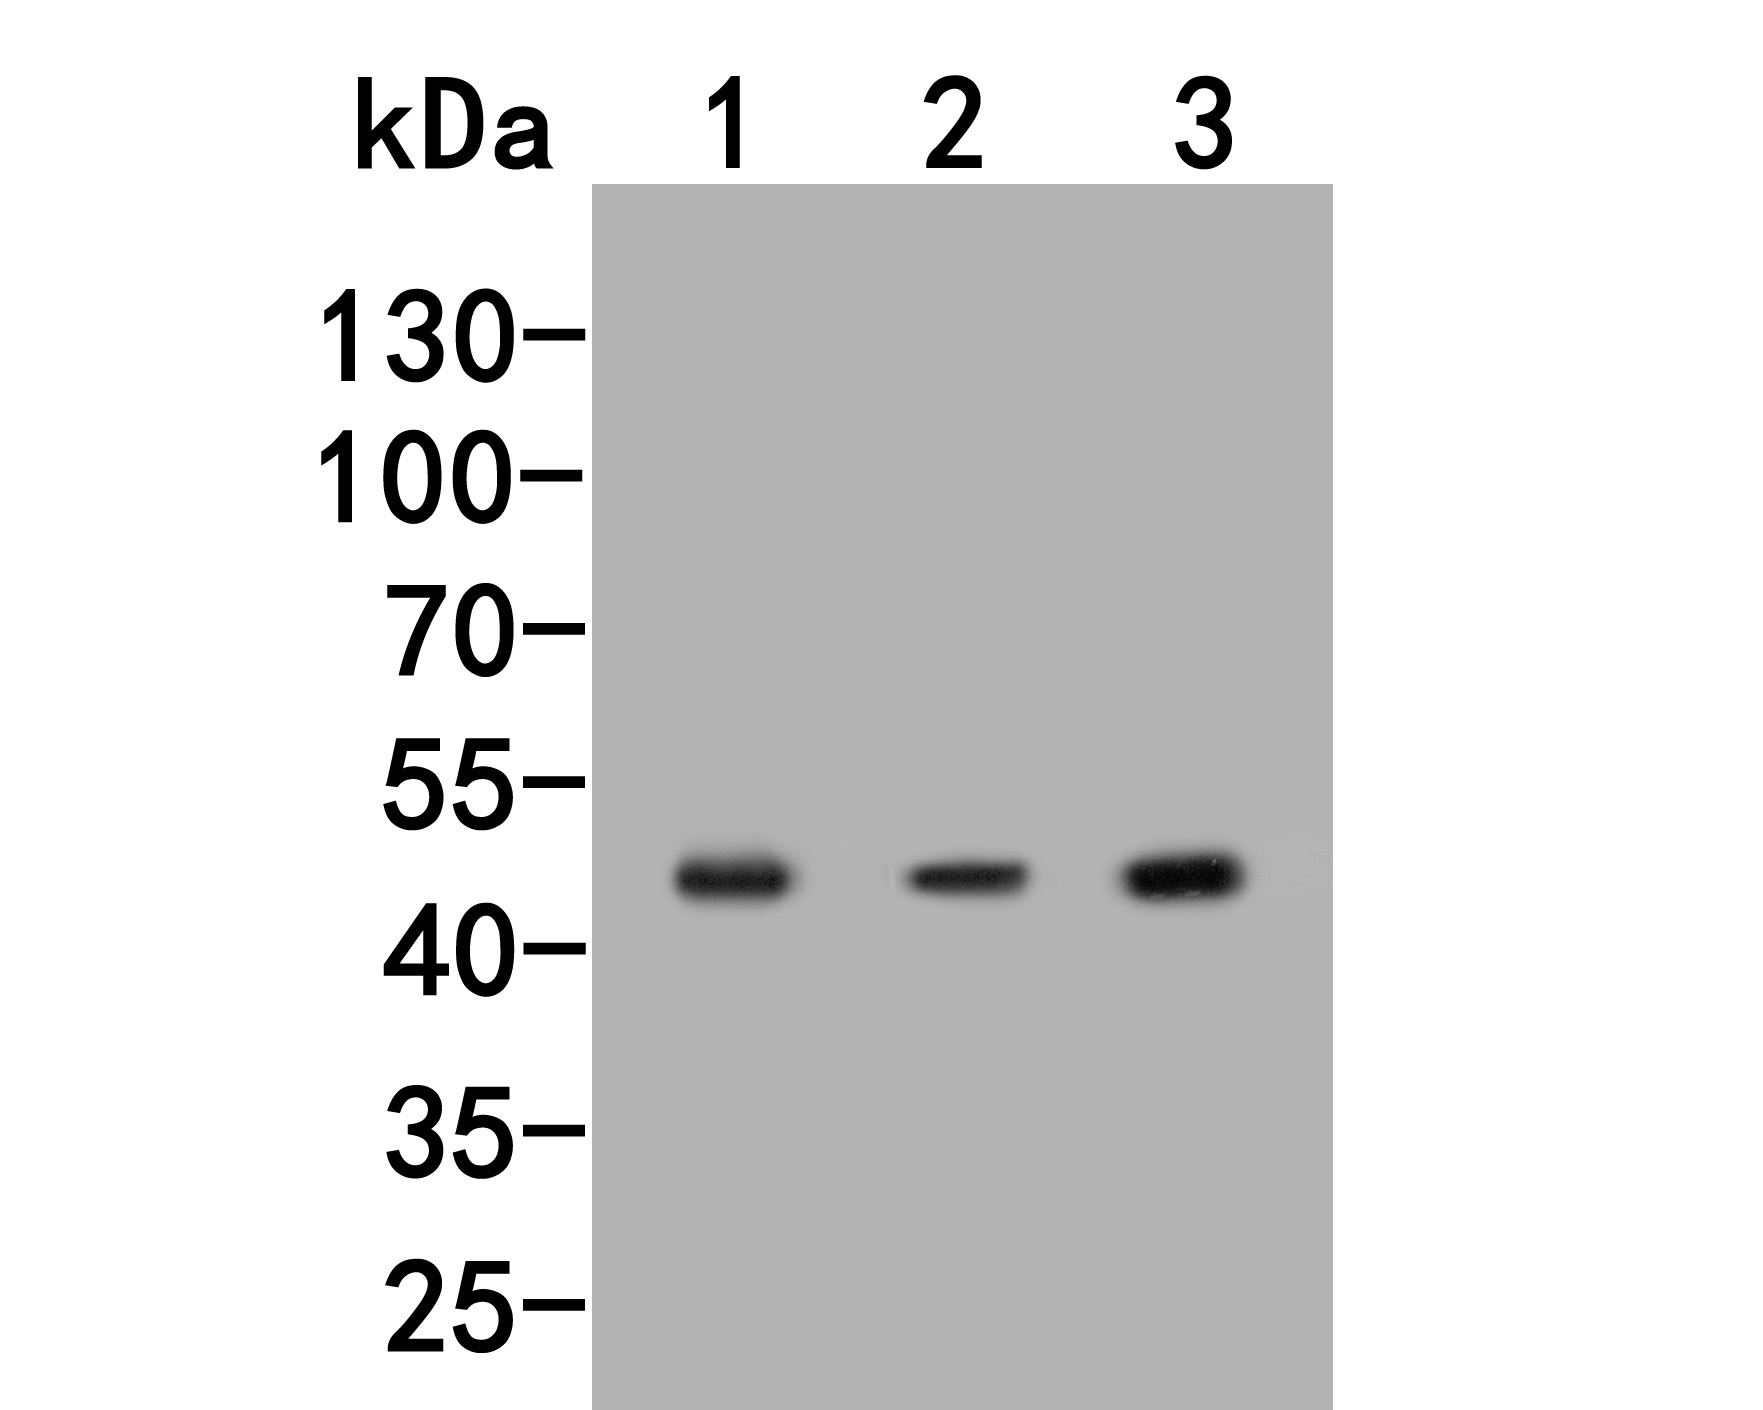 Western blot analysis of HSP47 on different lysates. Proteins were transferred to a PVDF membrane and blocked with 5% BSA in PBS for 1 hour at room temperature. The primary antibody (R1511-11, 1/500) was used in 5% BSA at room temperature for 2 hours. Goat Anti-Rabbit IgG - HRP Secondary Antibody (HA1001) at 1:5,000 dilution was used for 1 hour at room temperature.<br /> Positive control: <br /> Lane 1: Rat placenta tissue lysate<br /> Lane 2: Siha cell lysate<br /> Lane 3: NIH/3T3 cell lysate